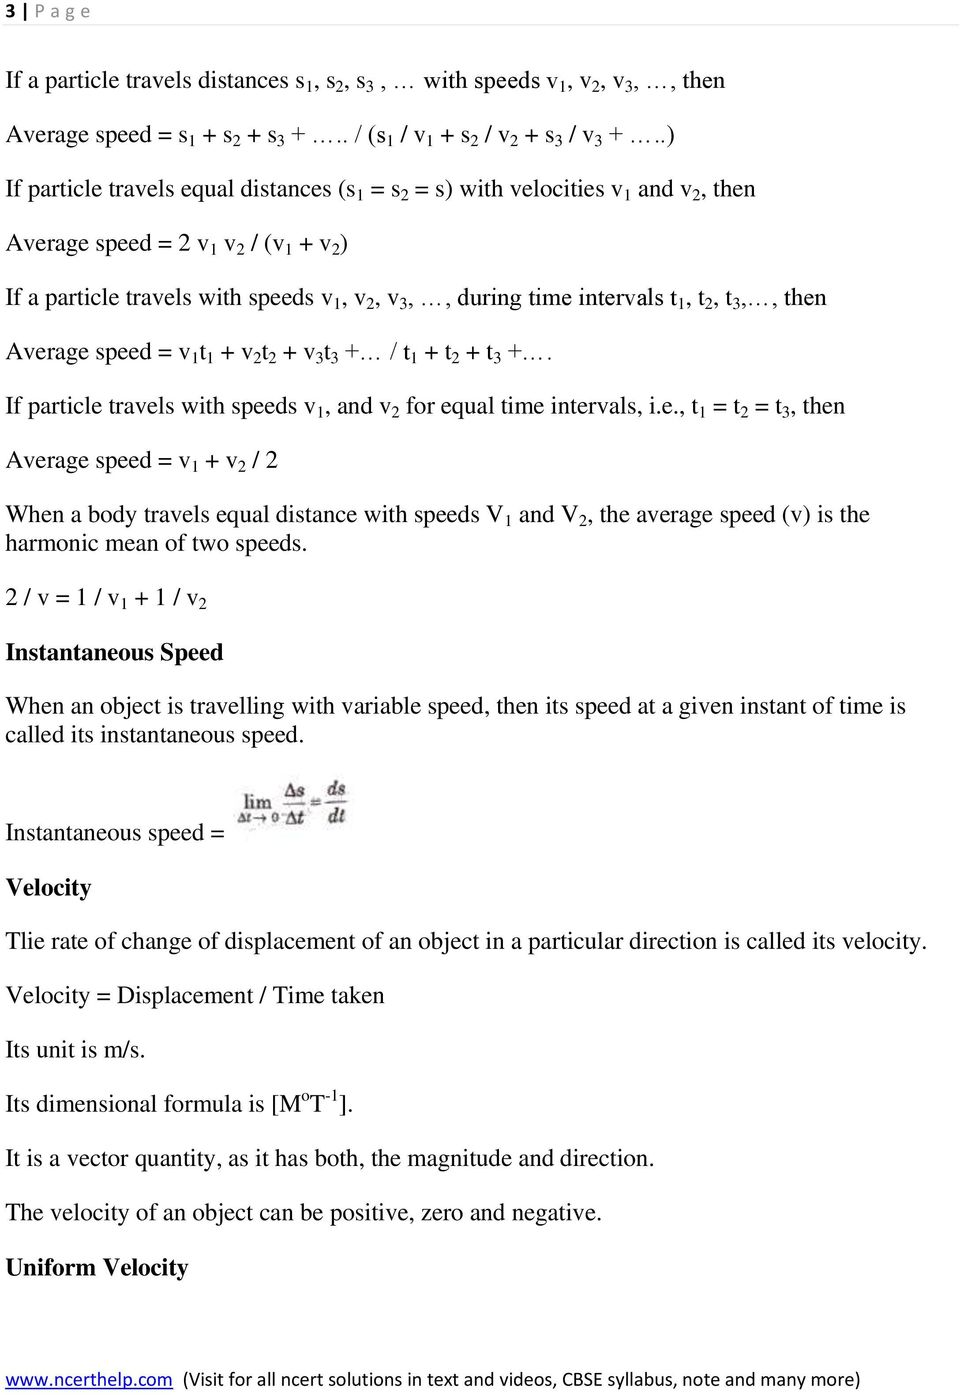 intervals t 1, t 2, t 3,, then Average speed = v 1 t 1 + v 2 t 2 + v 3 t 3 + / t 1 + t 2 + t 3 +. If particle travels with speeds v 1, and v 2 for equal time intervals, i.e., t 1 = t 2 = t 3, then Average speed = v 1 + v 2 / 2 When a body travels equal distance with speeds V 1 and V 2, the average speed (v) is the harmonic mean of two speeds.